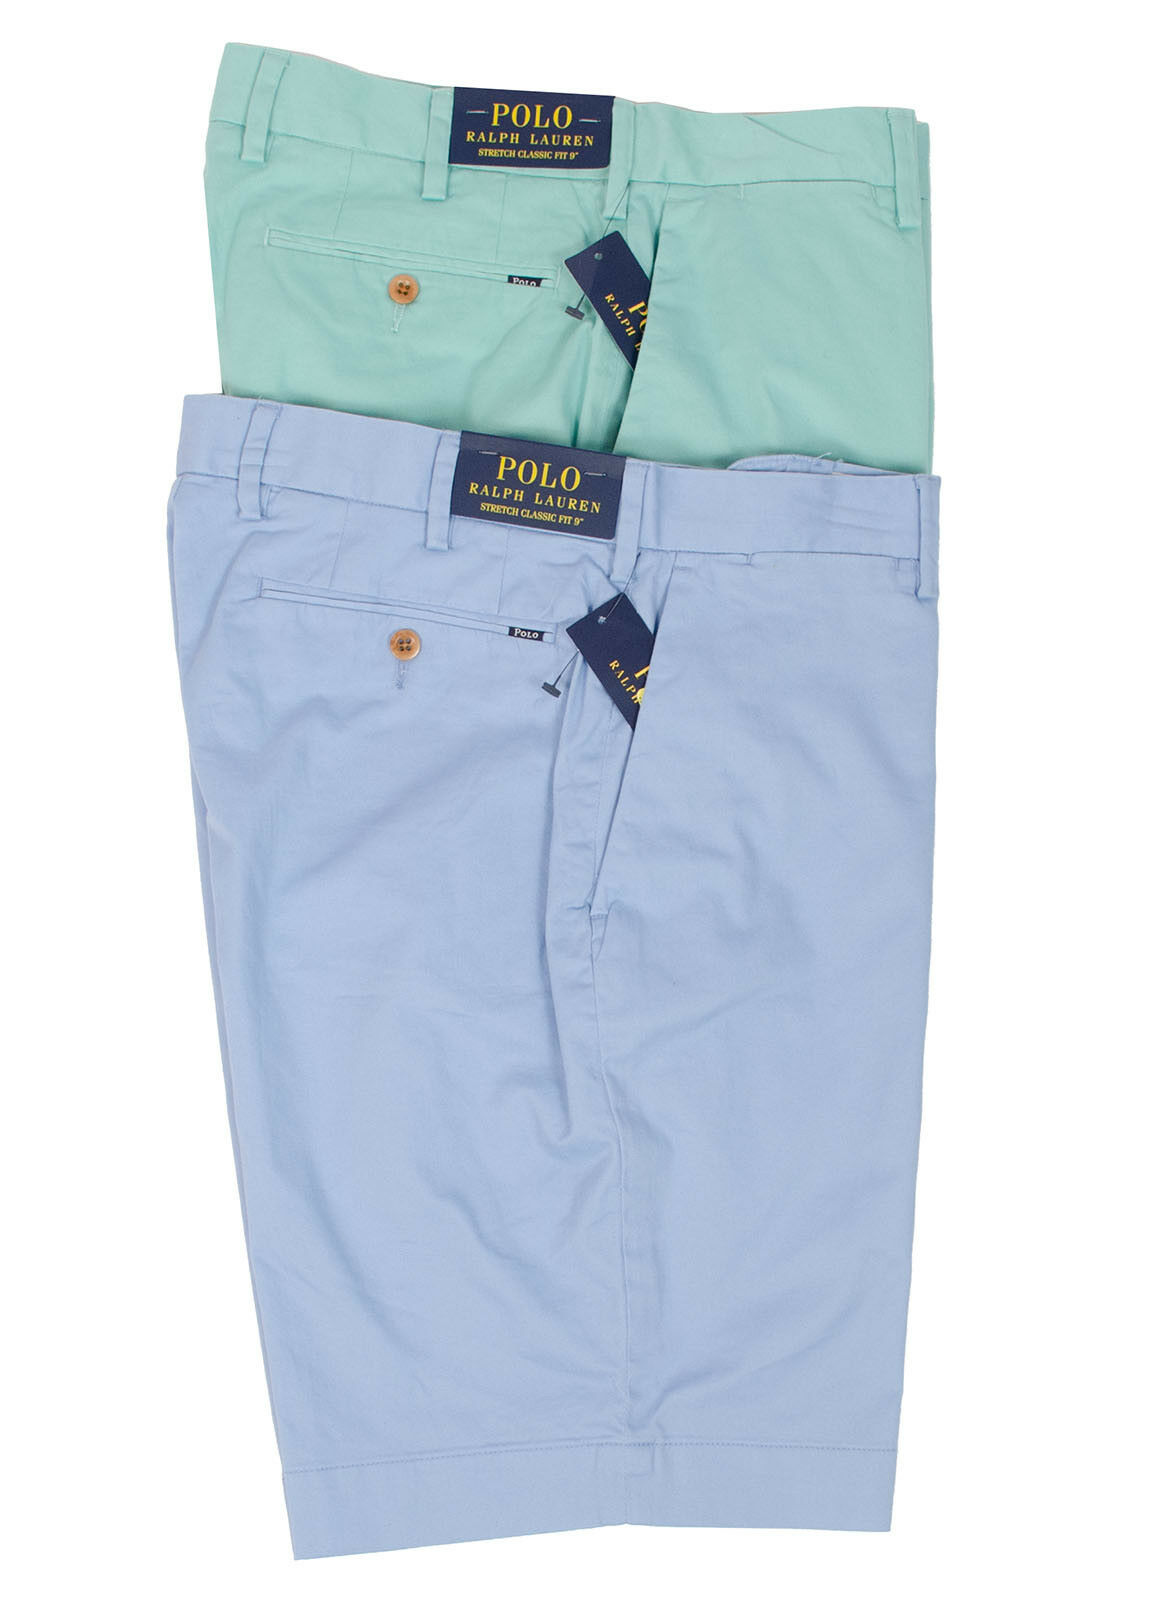 6ecfc36977712 POLO RALPH LAUREN STRETCH CLASSIC FIT 9 MEN S COTTON SHORTS OFFSHORE GREEN  blueE